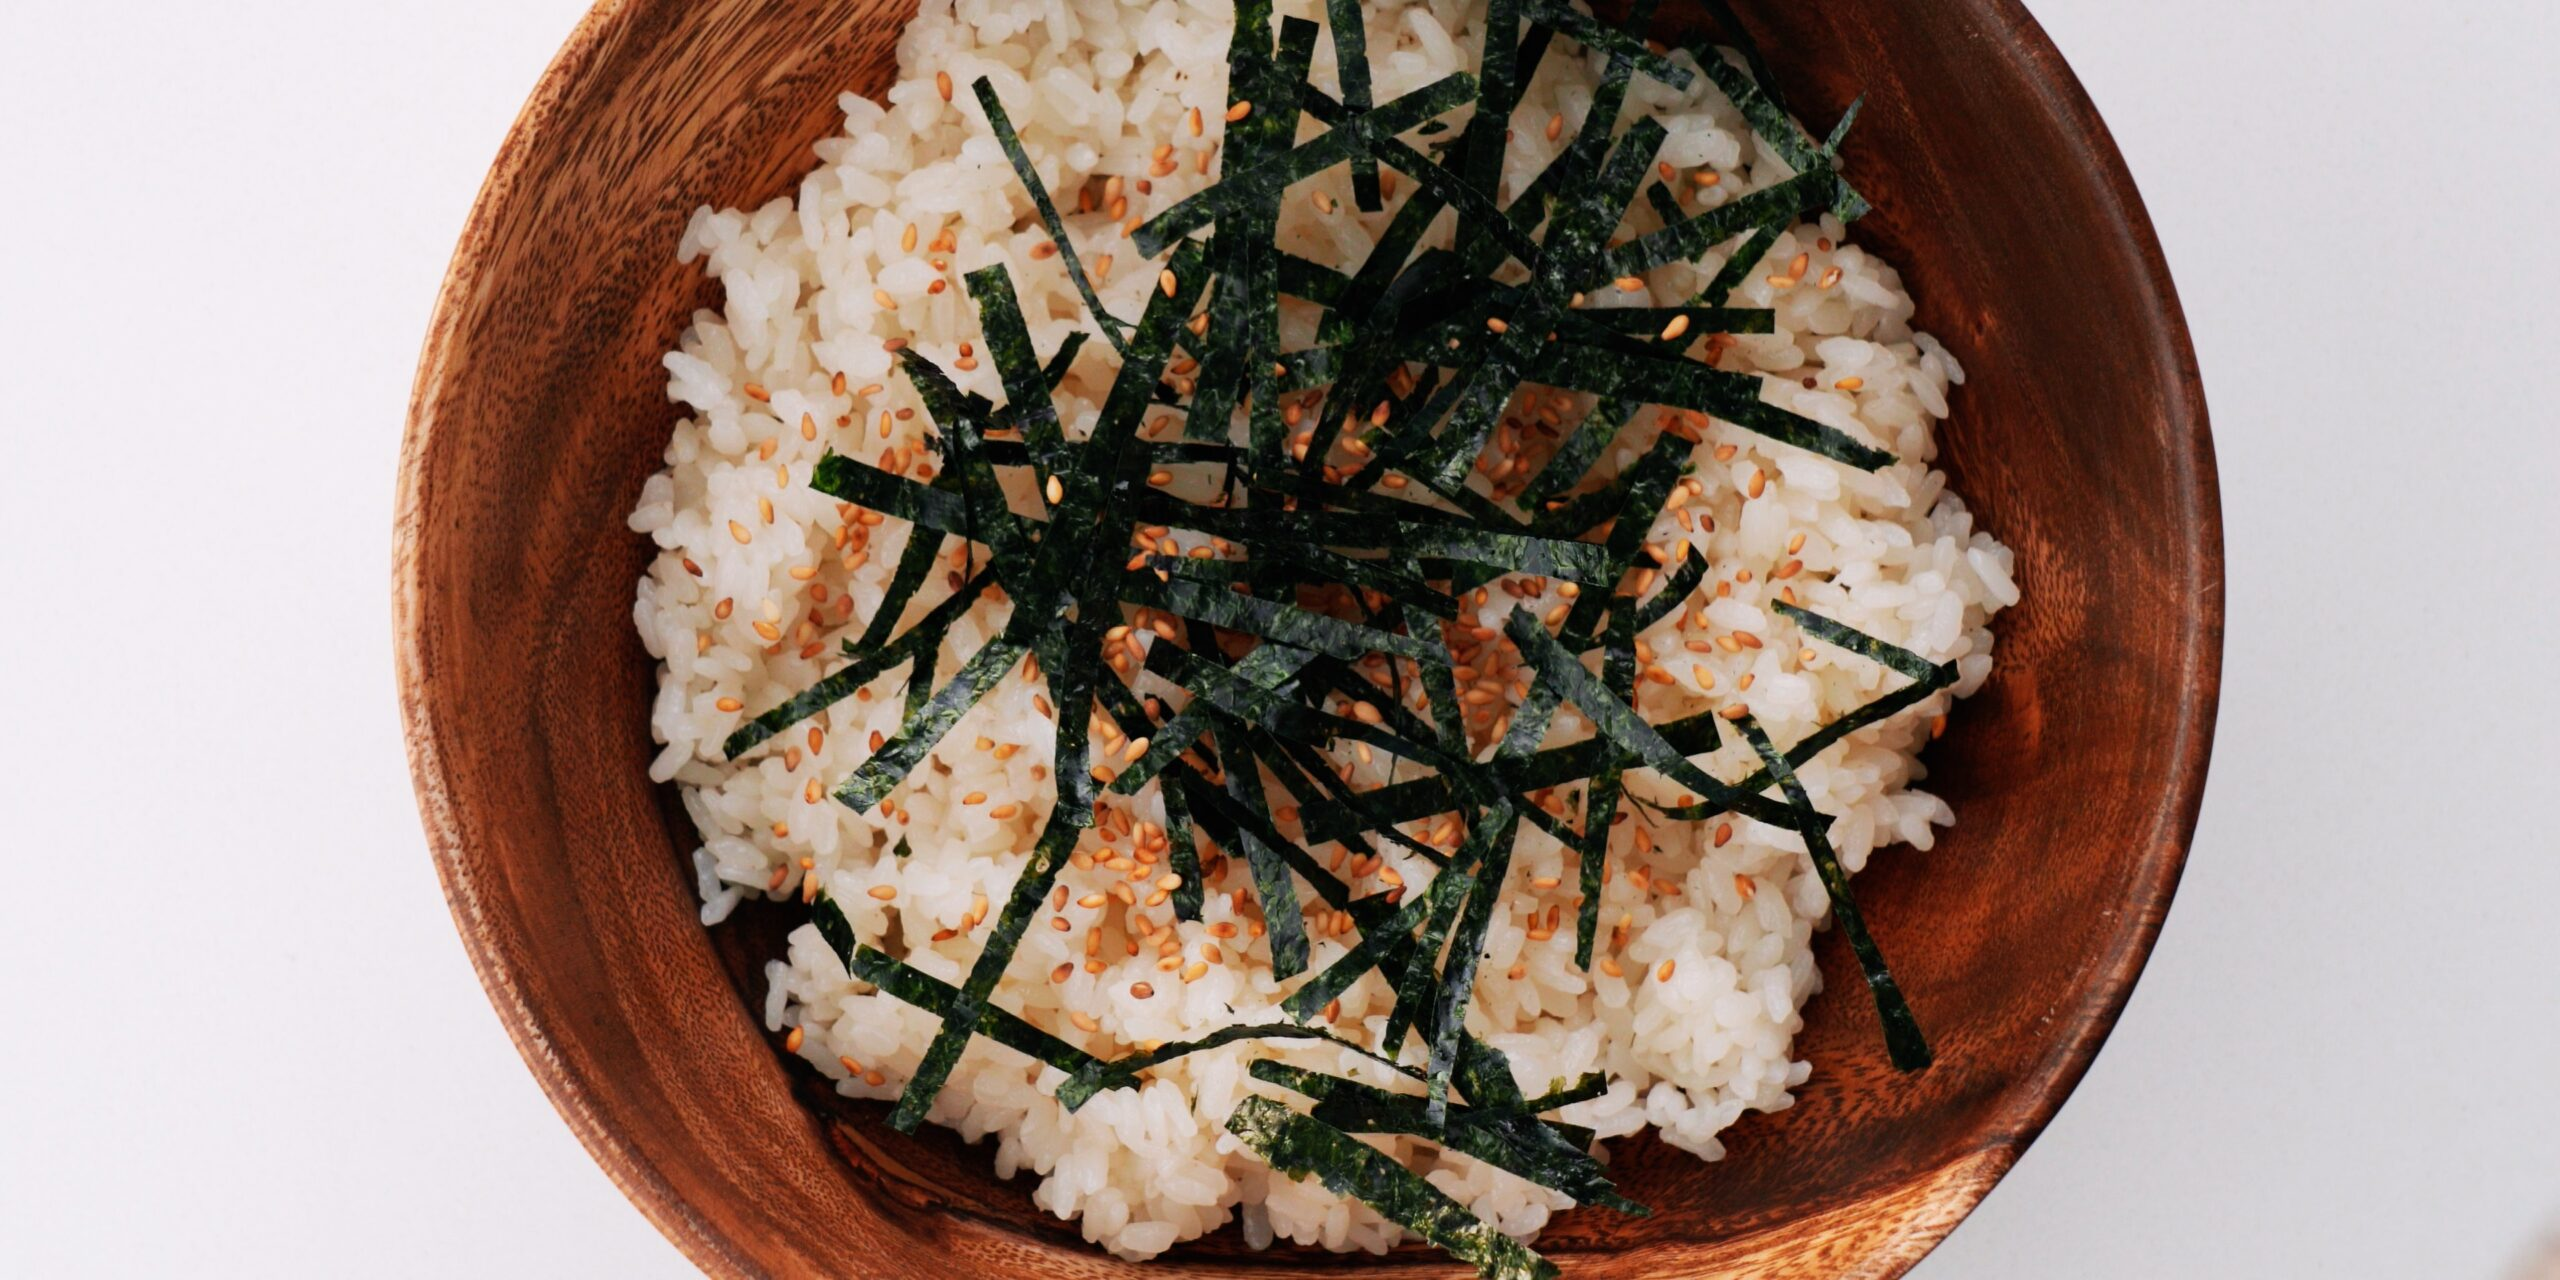 Sushi rice, nori and sesame seeds in a wooden bowl.